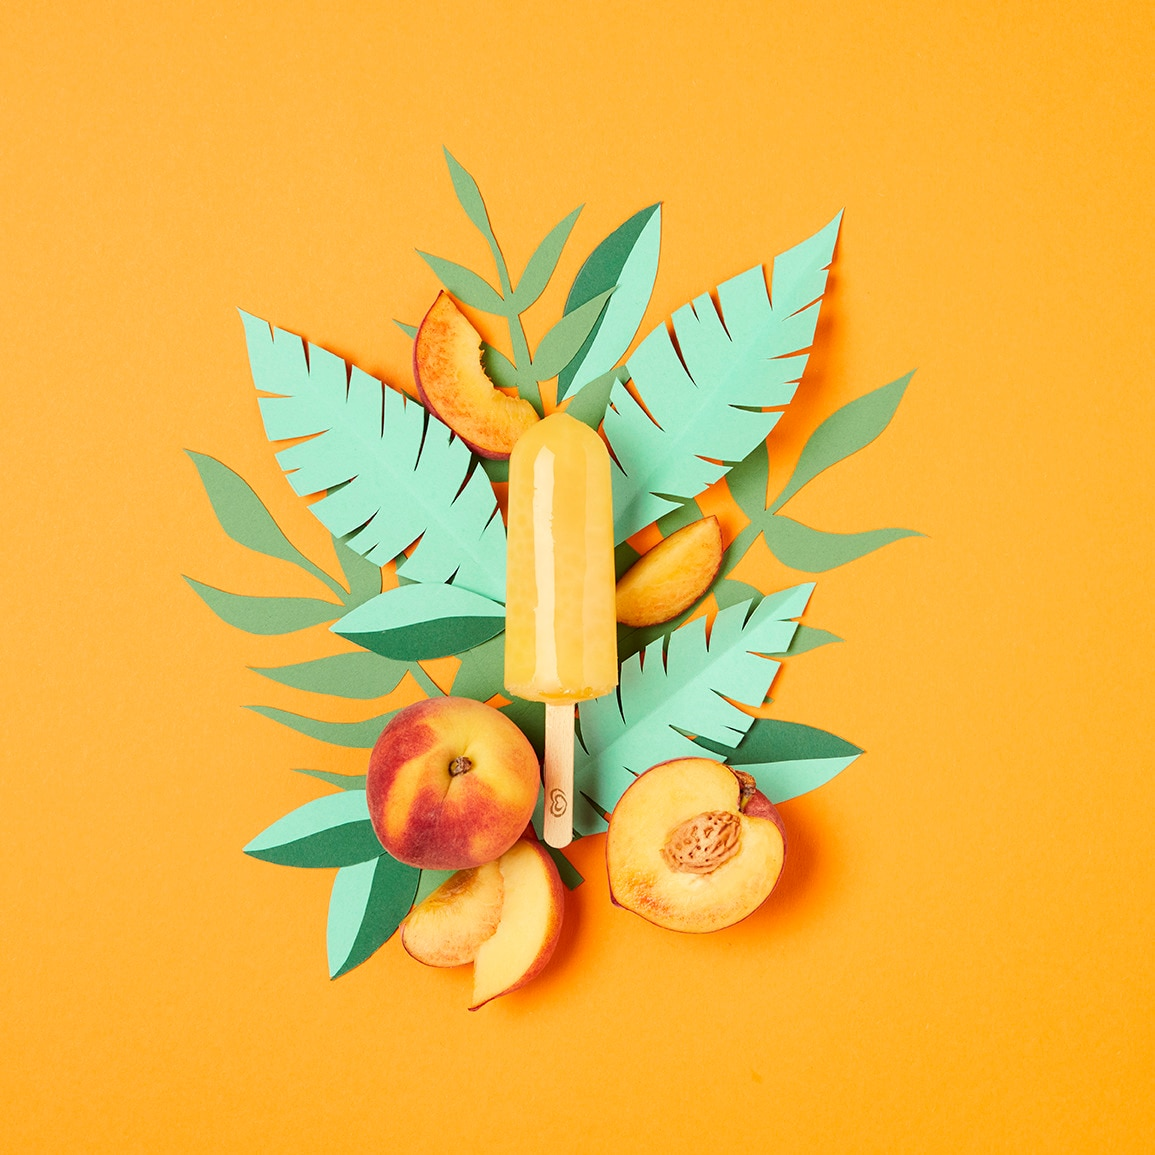 Ice lolly with peaches and leaves